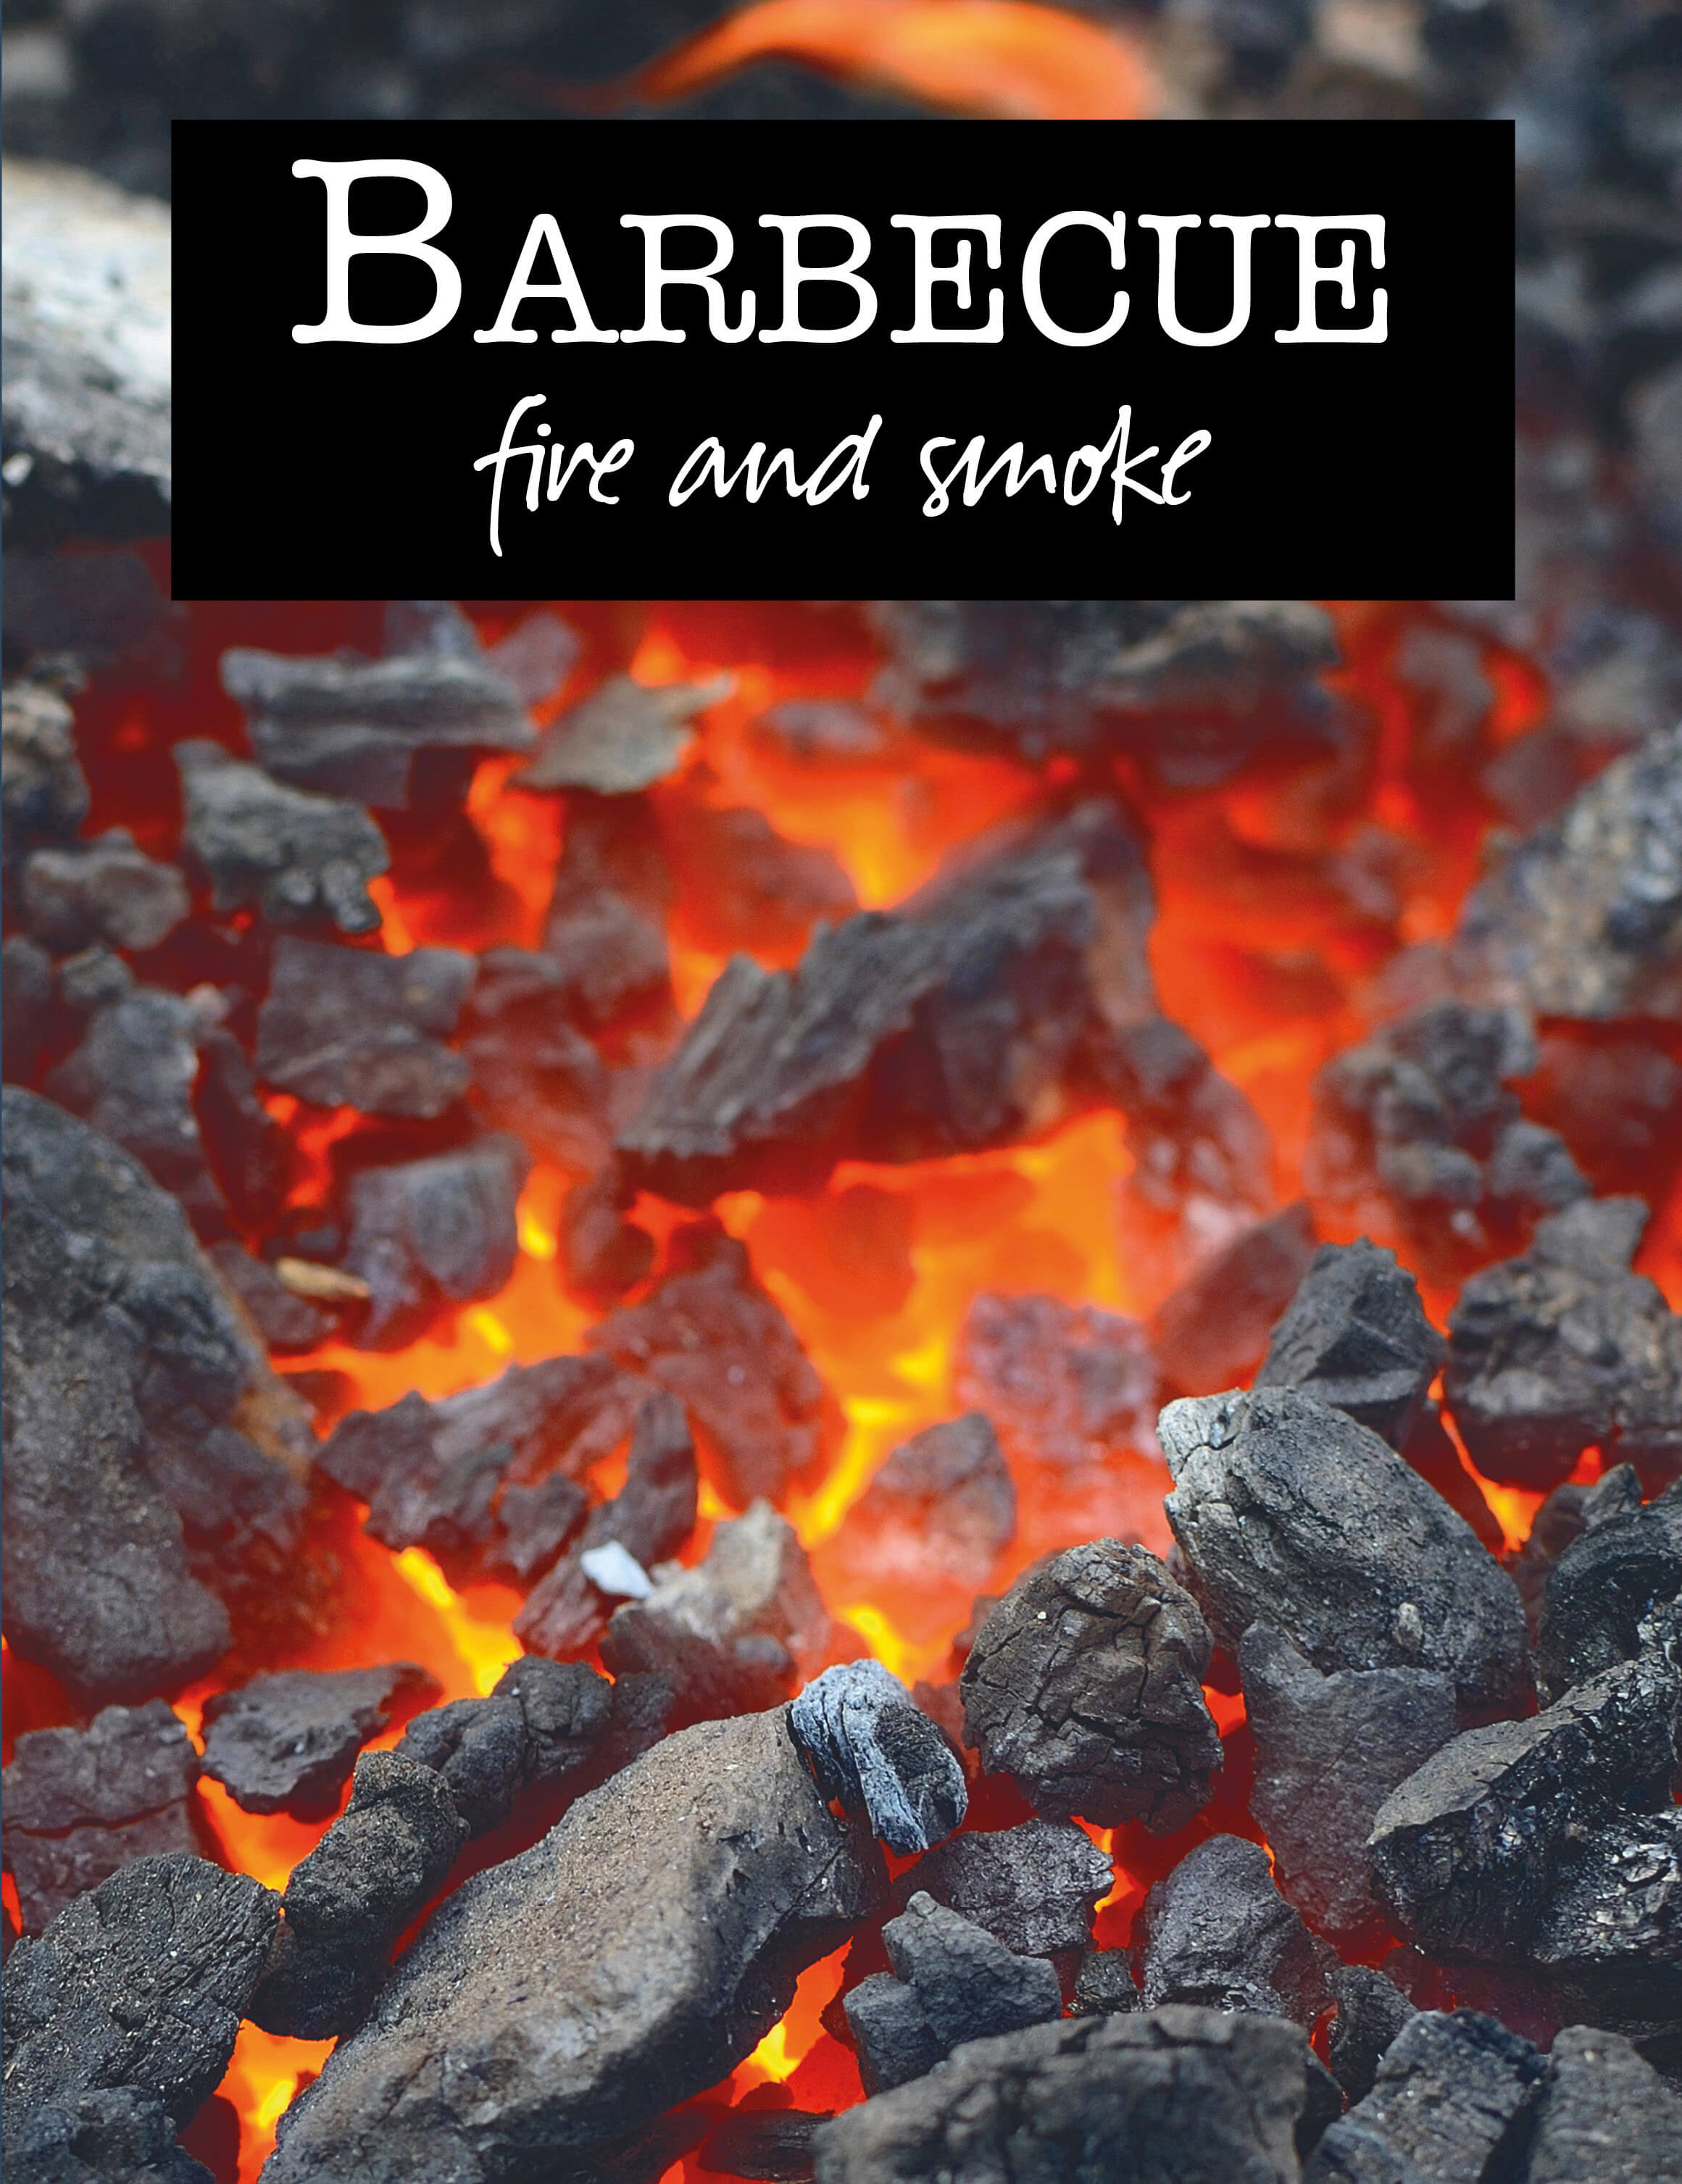 Buy 'Barbecue, fire and smoke' now!